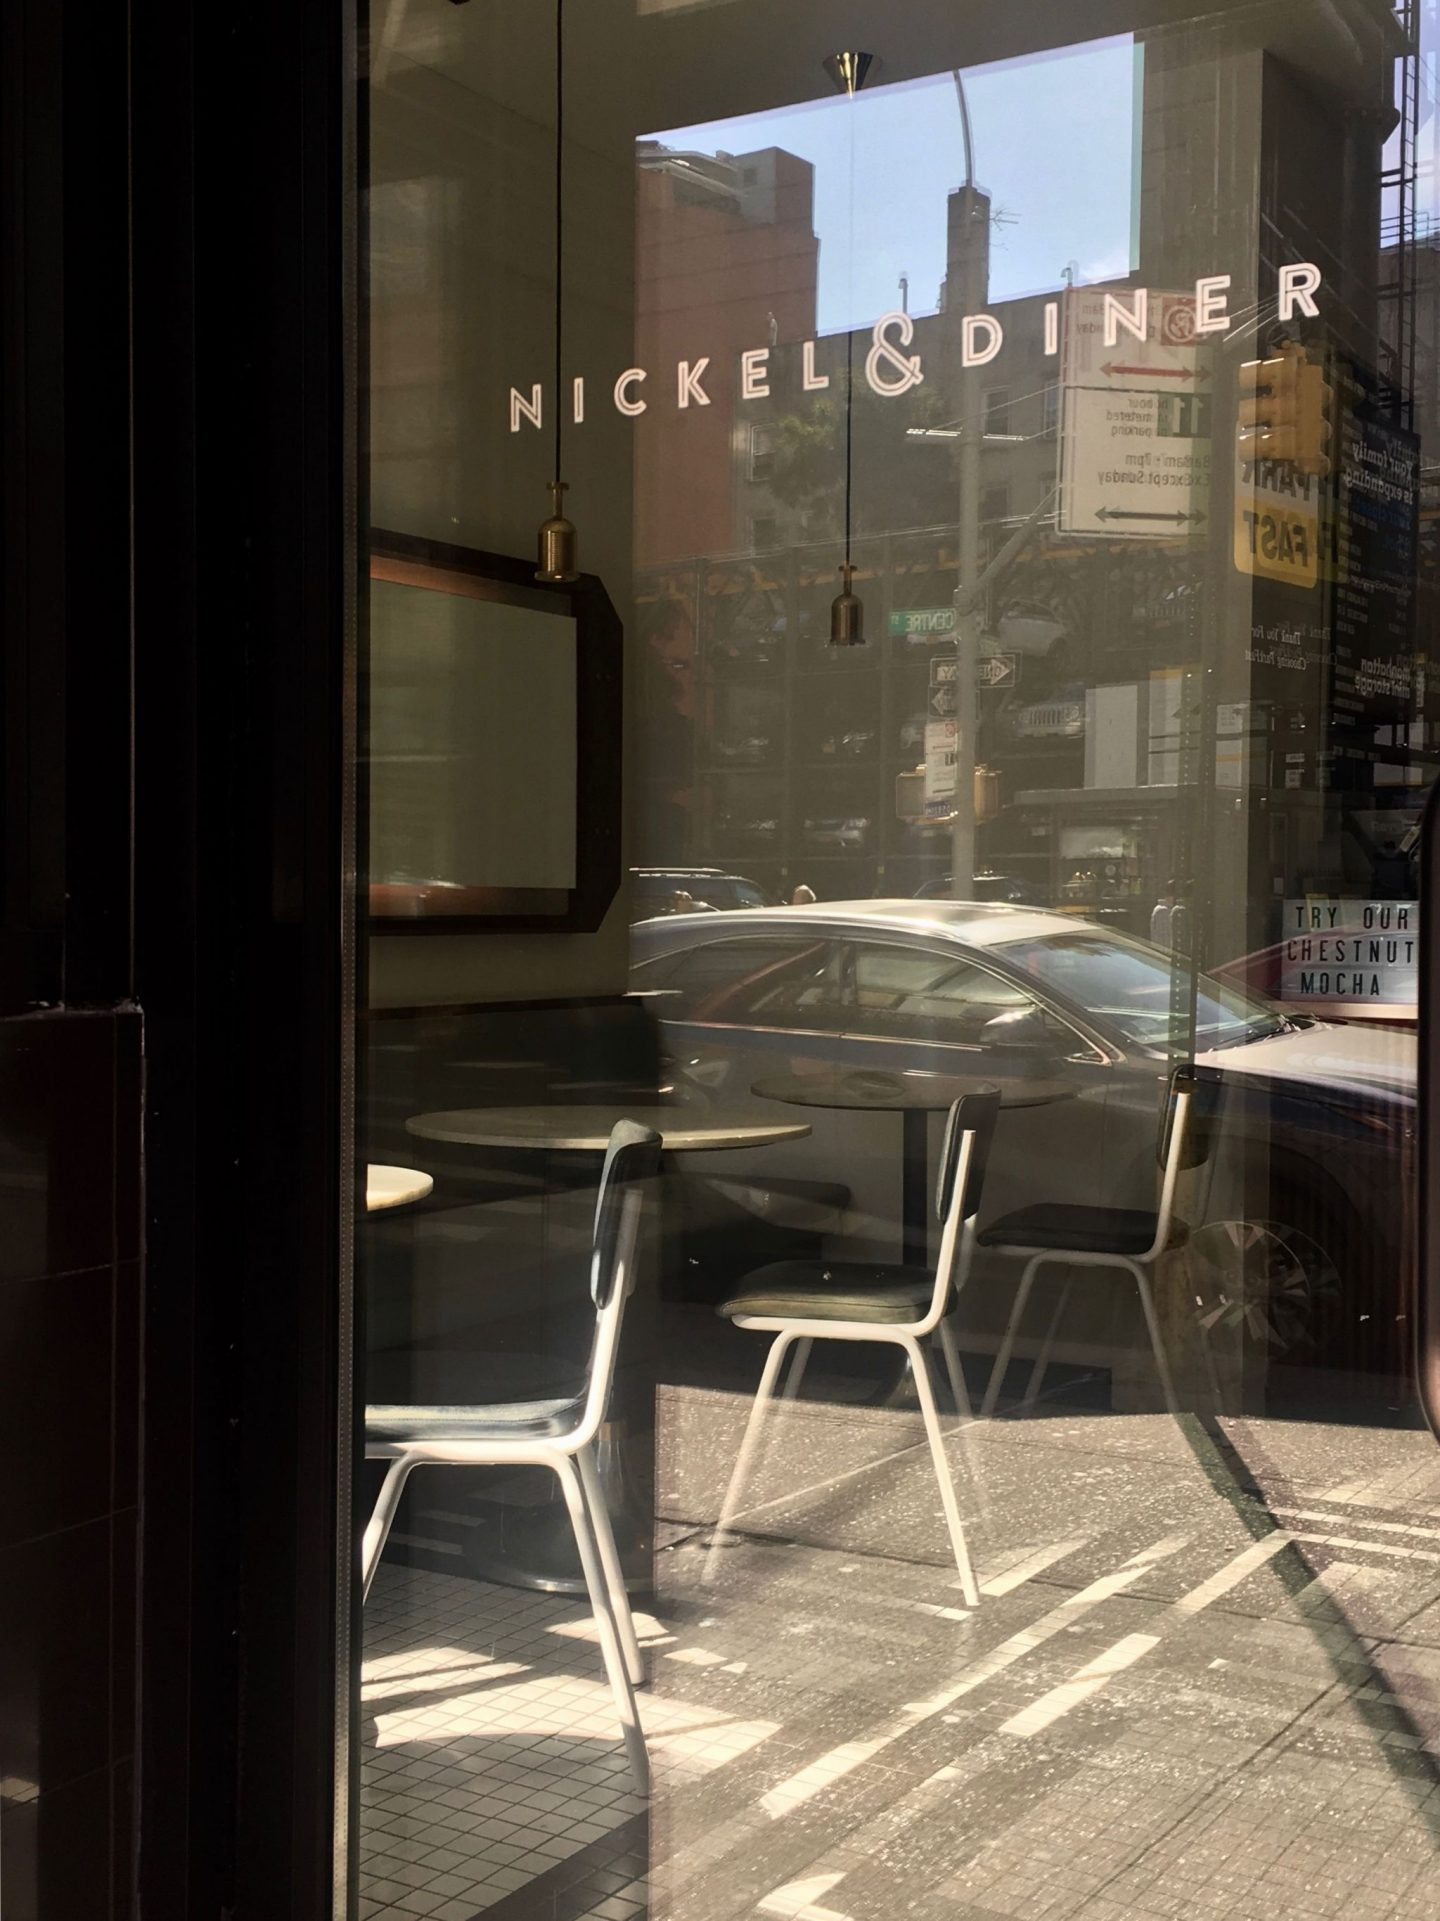 nickel and diner